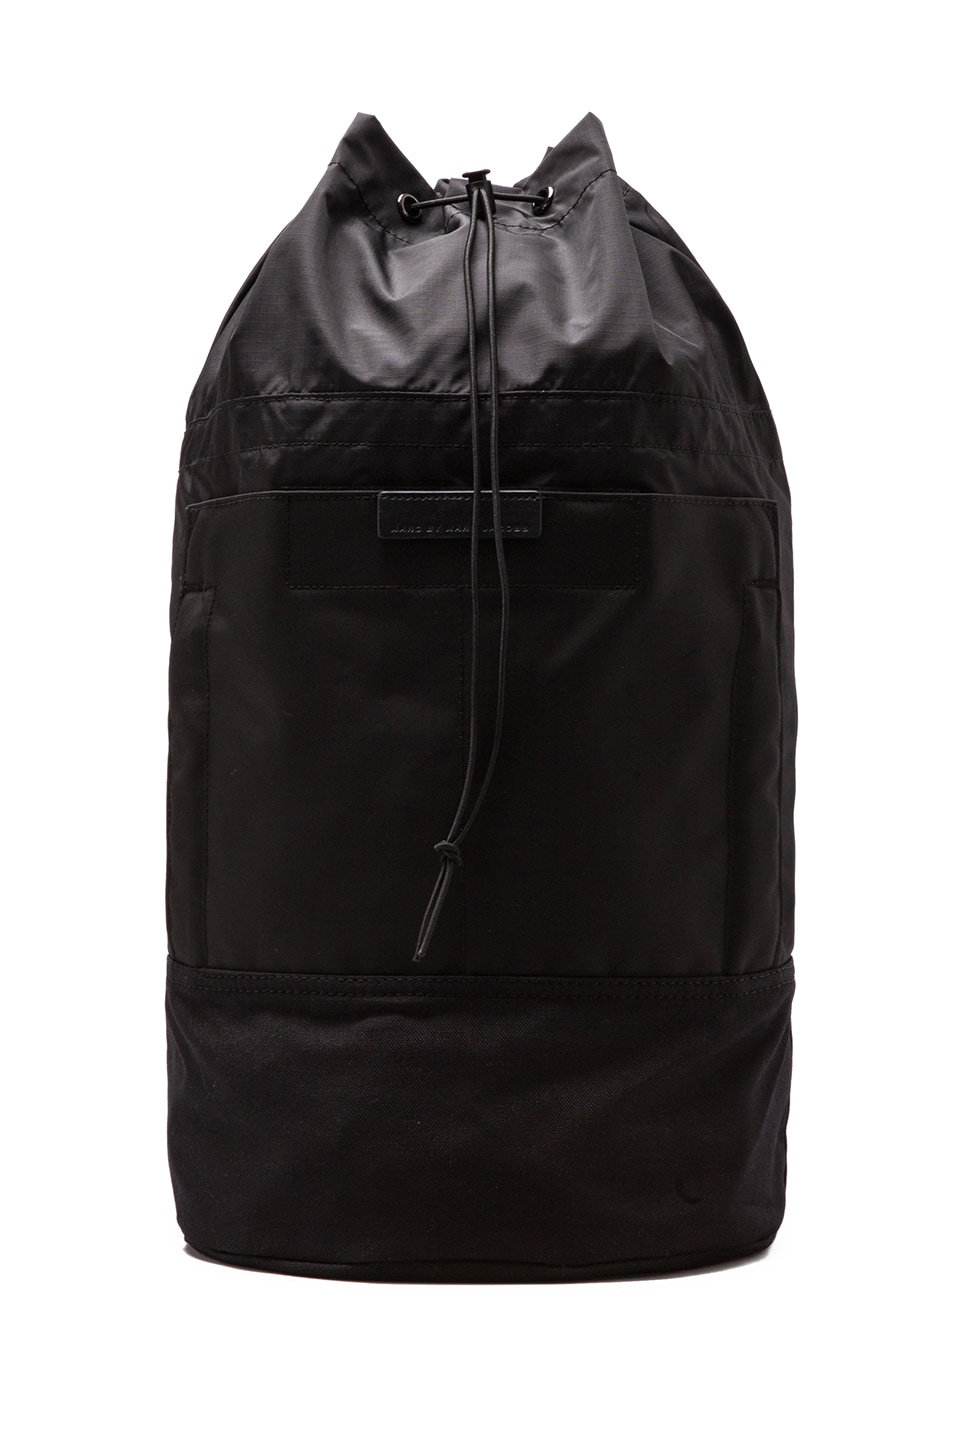 Marc by Marc Jacobs Drawstring Duffle in Black